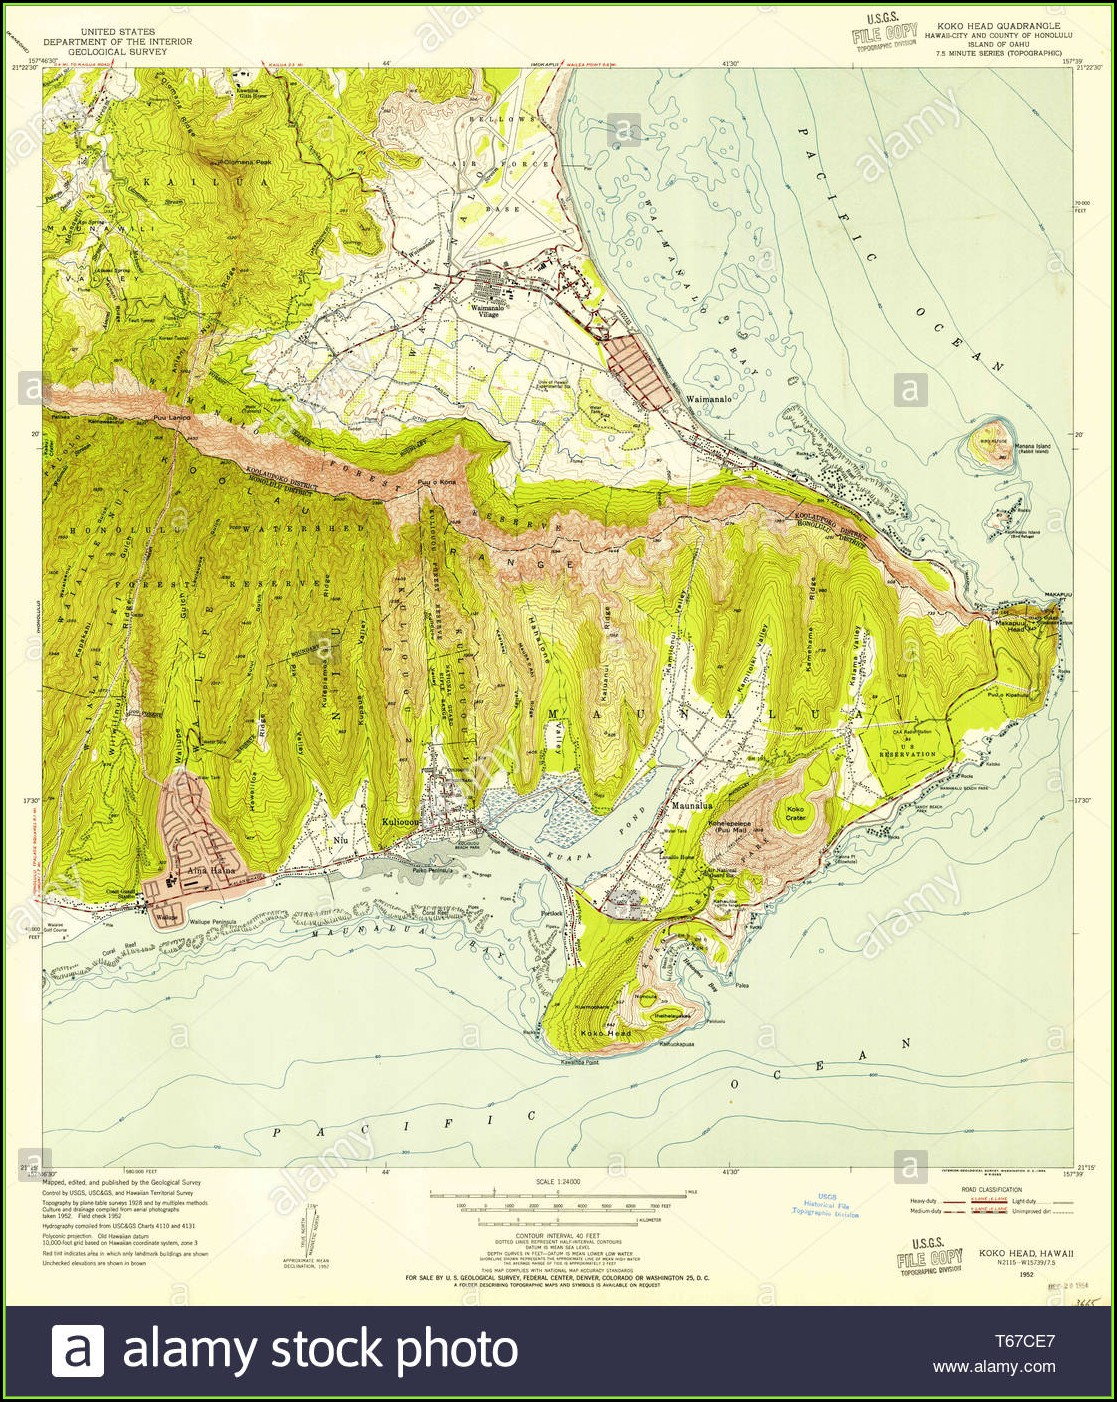 Usgs Hawaii Topo Map